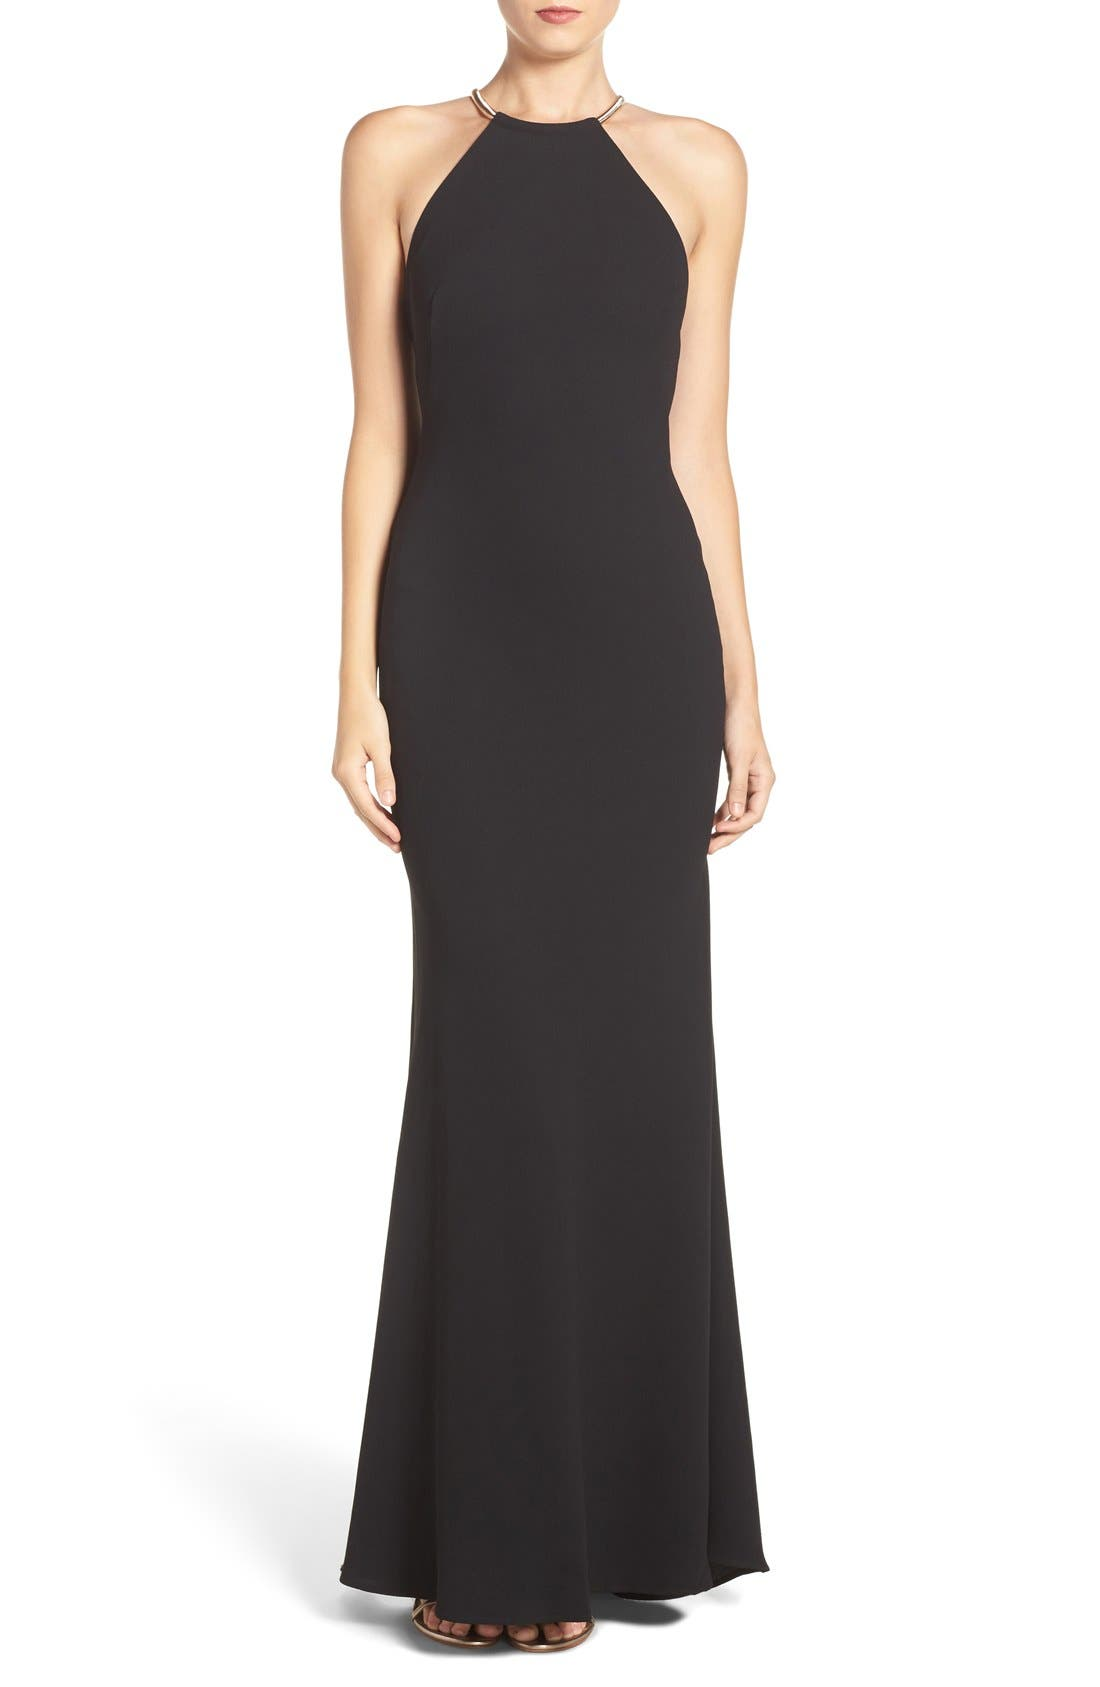 Alternate Image 1 Selected - Xscape Chain Neck Crepe Gown